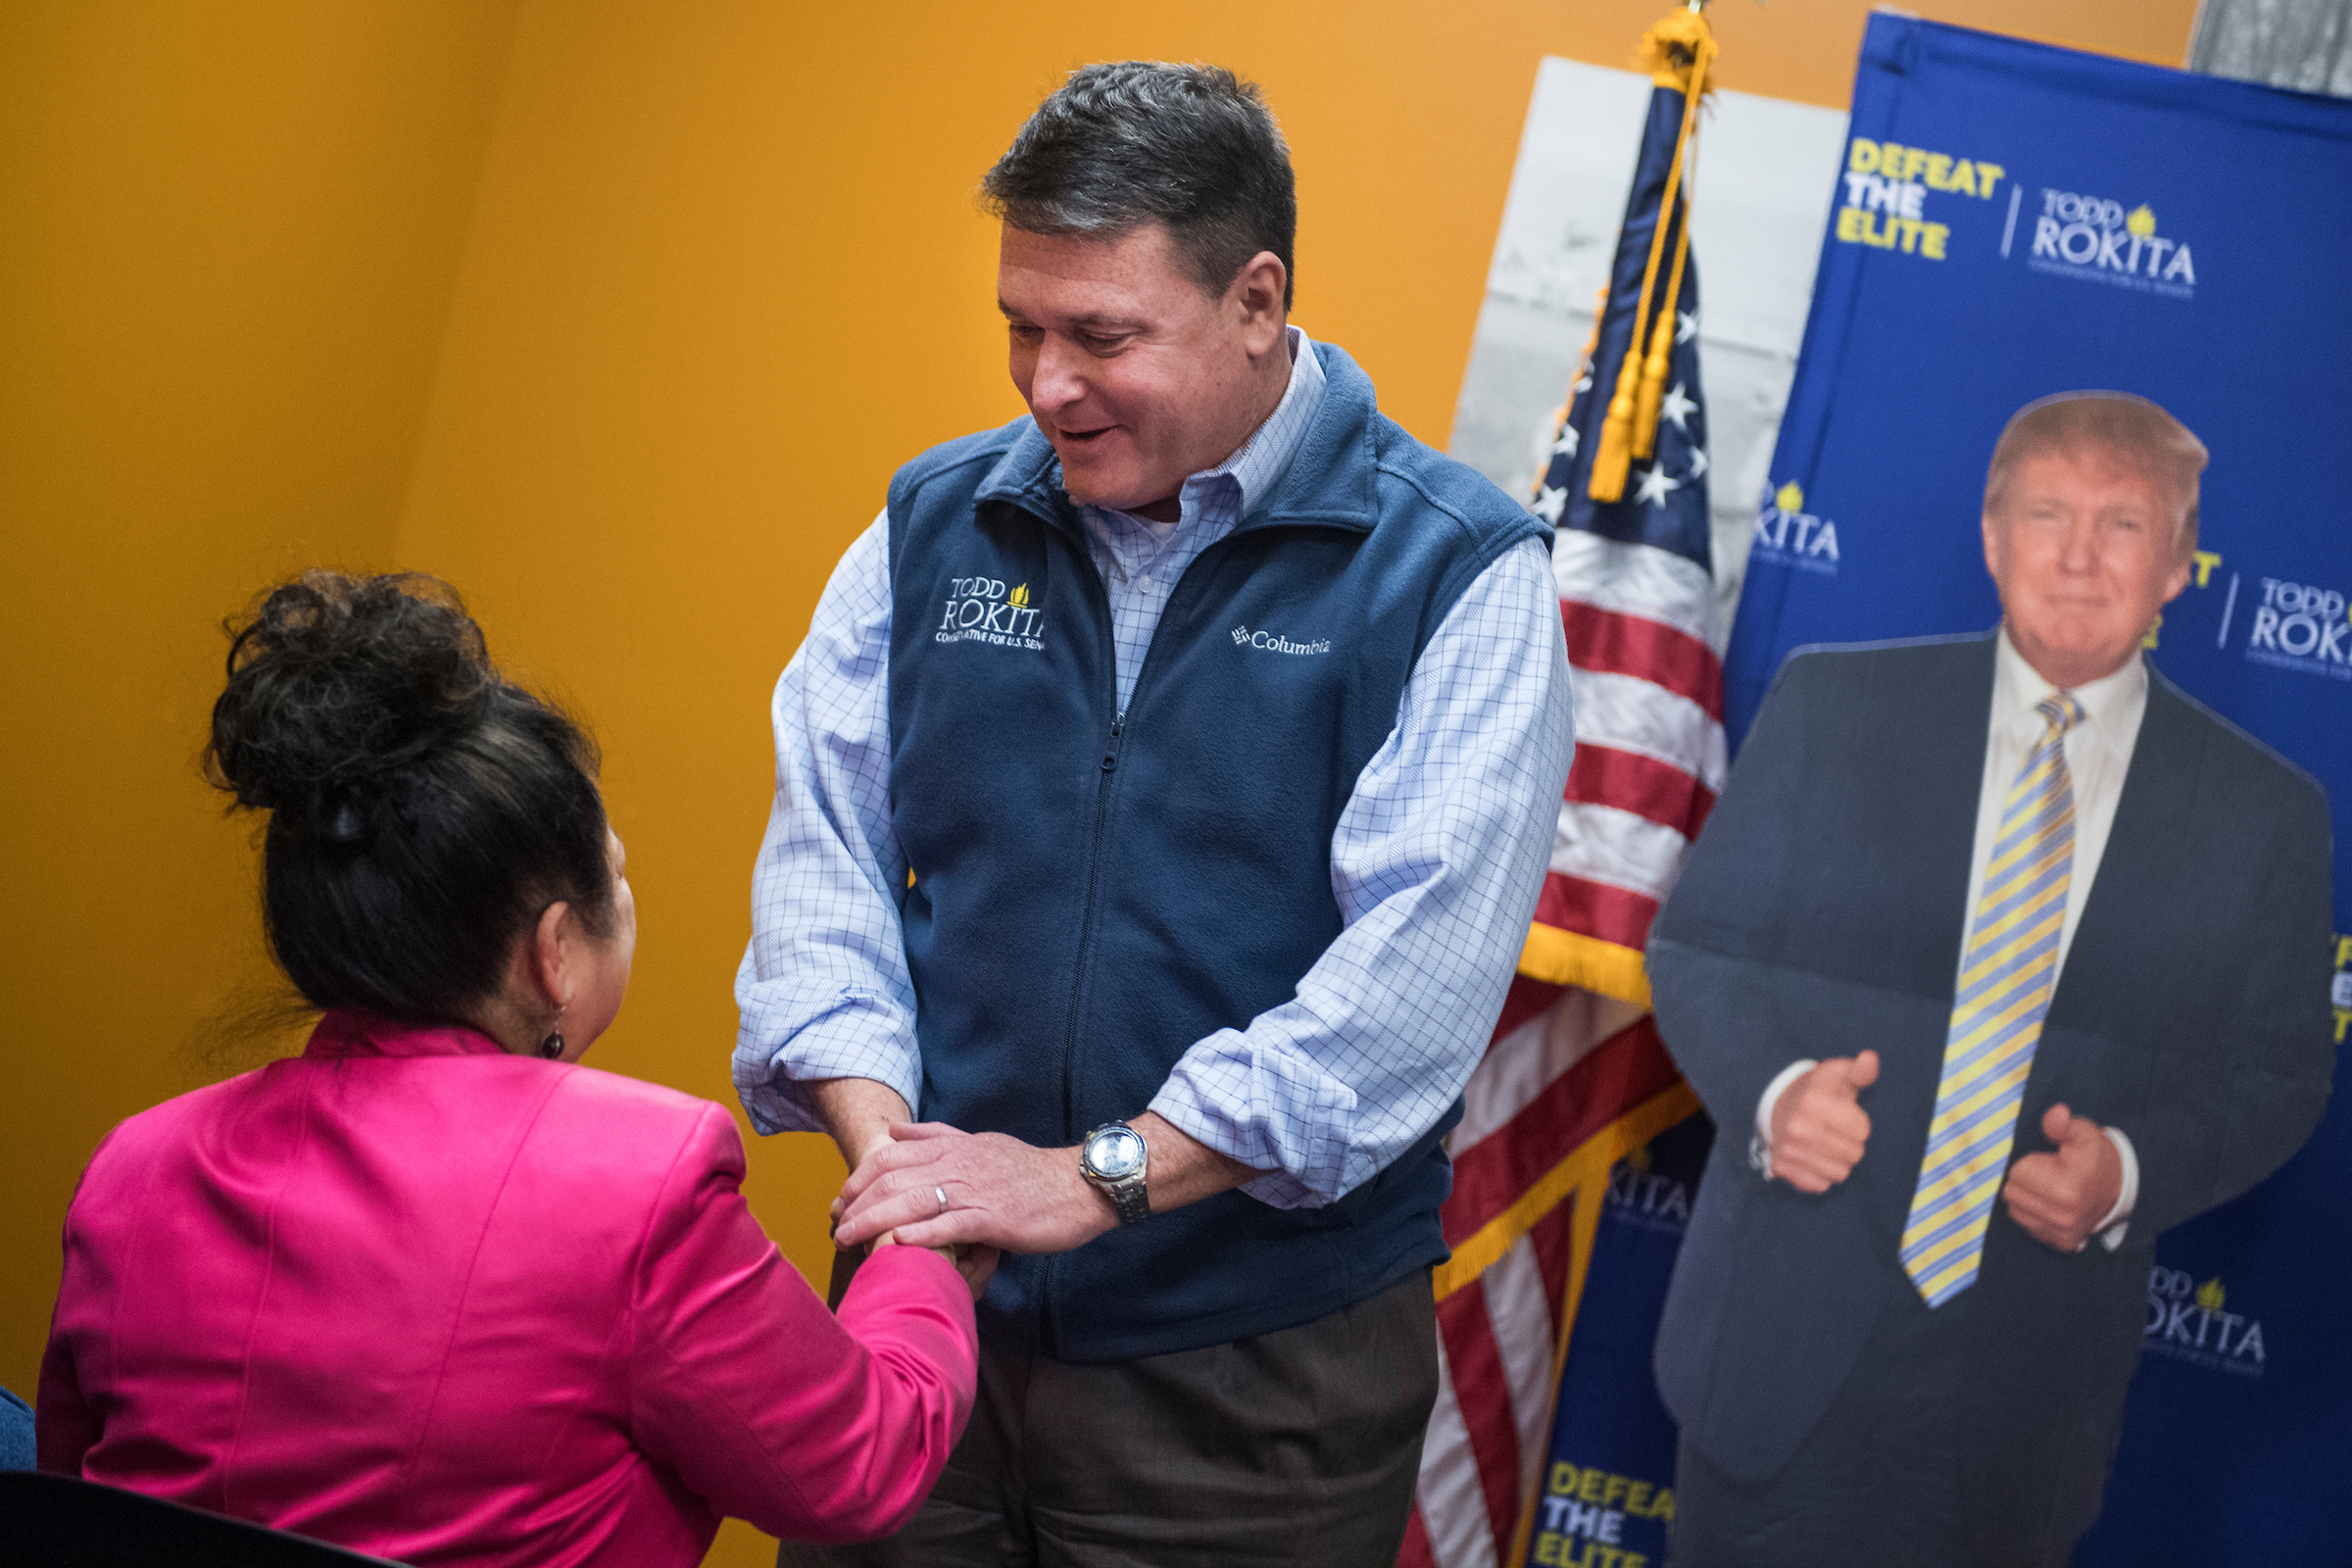 UNITED STATES - APRIL 4: Rep. Todd Rokita, R-Ind., who is running for the Republican nomination for Senate in Indiana, greets Tina Wenger before addressing voters in South Bend, Ind., on April 4, 2018. (Photo By Tom Williams/CQ Roll Call)